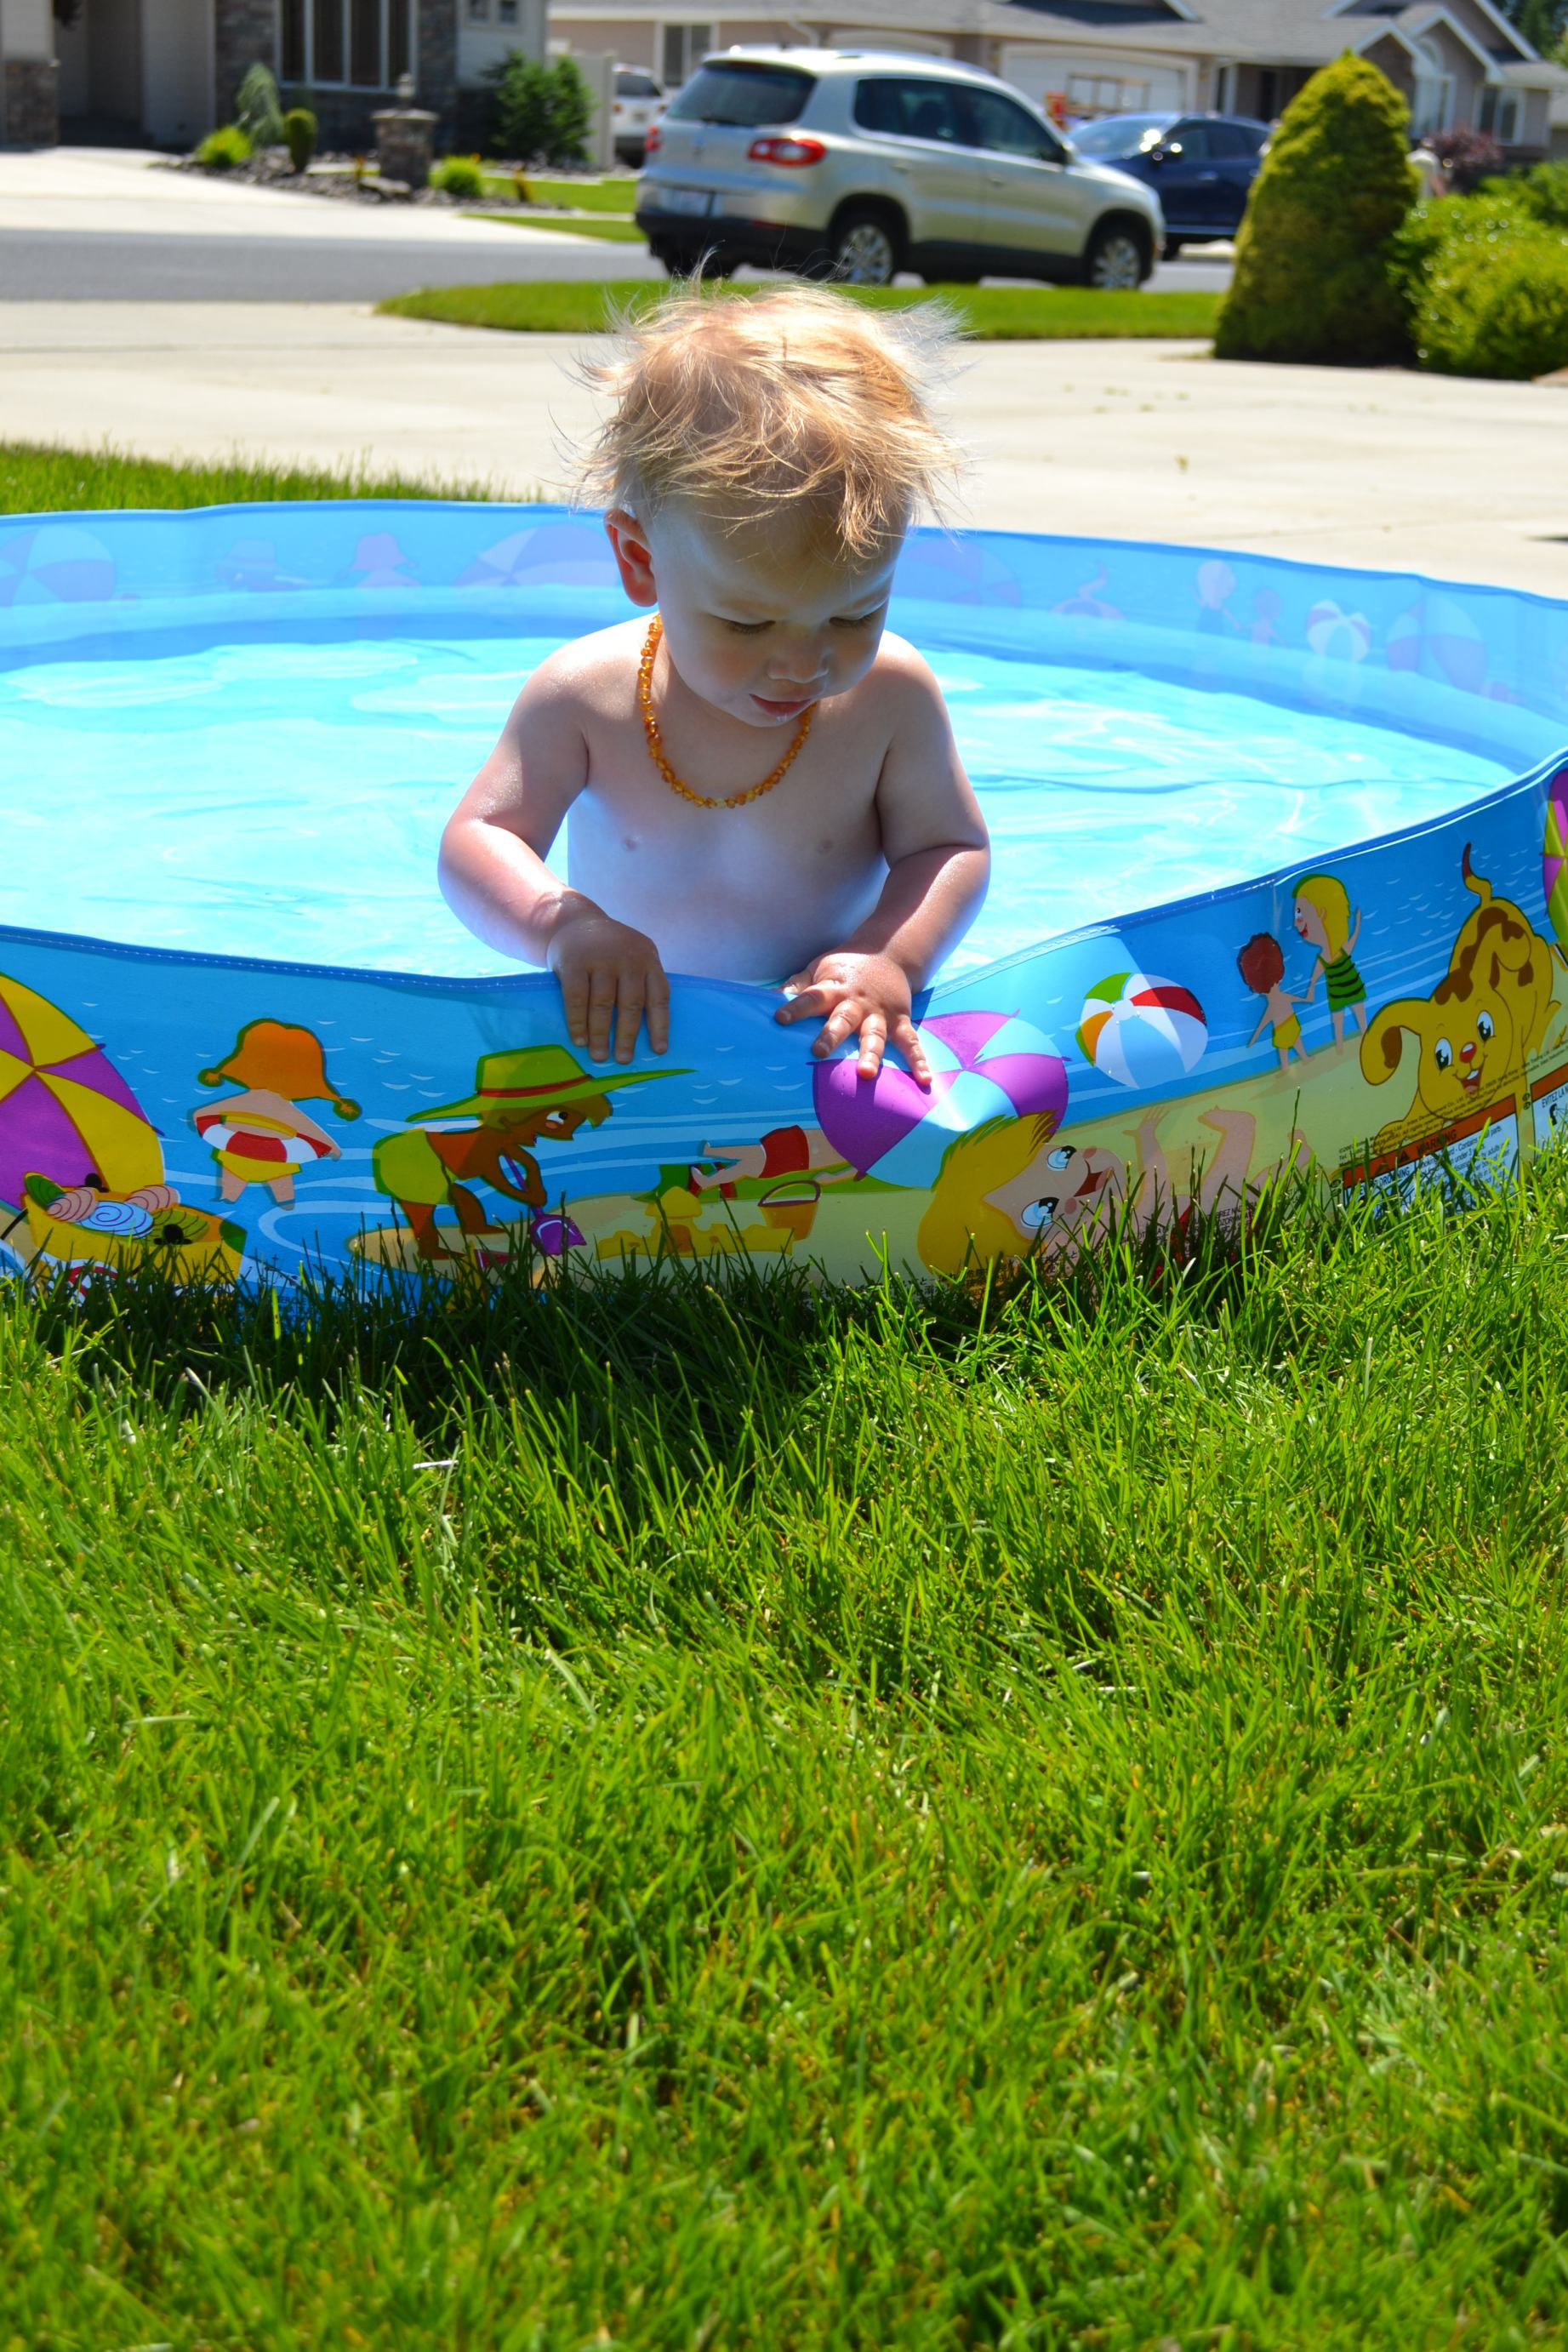 early this month, we pulled out Lincoln's kiddie pool for the first time..